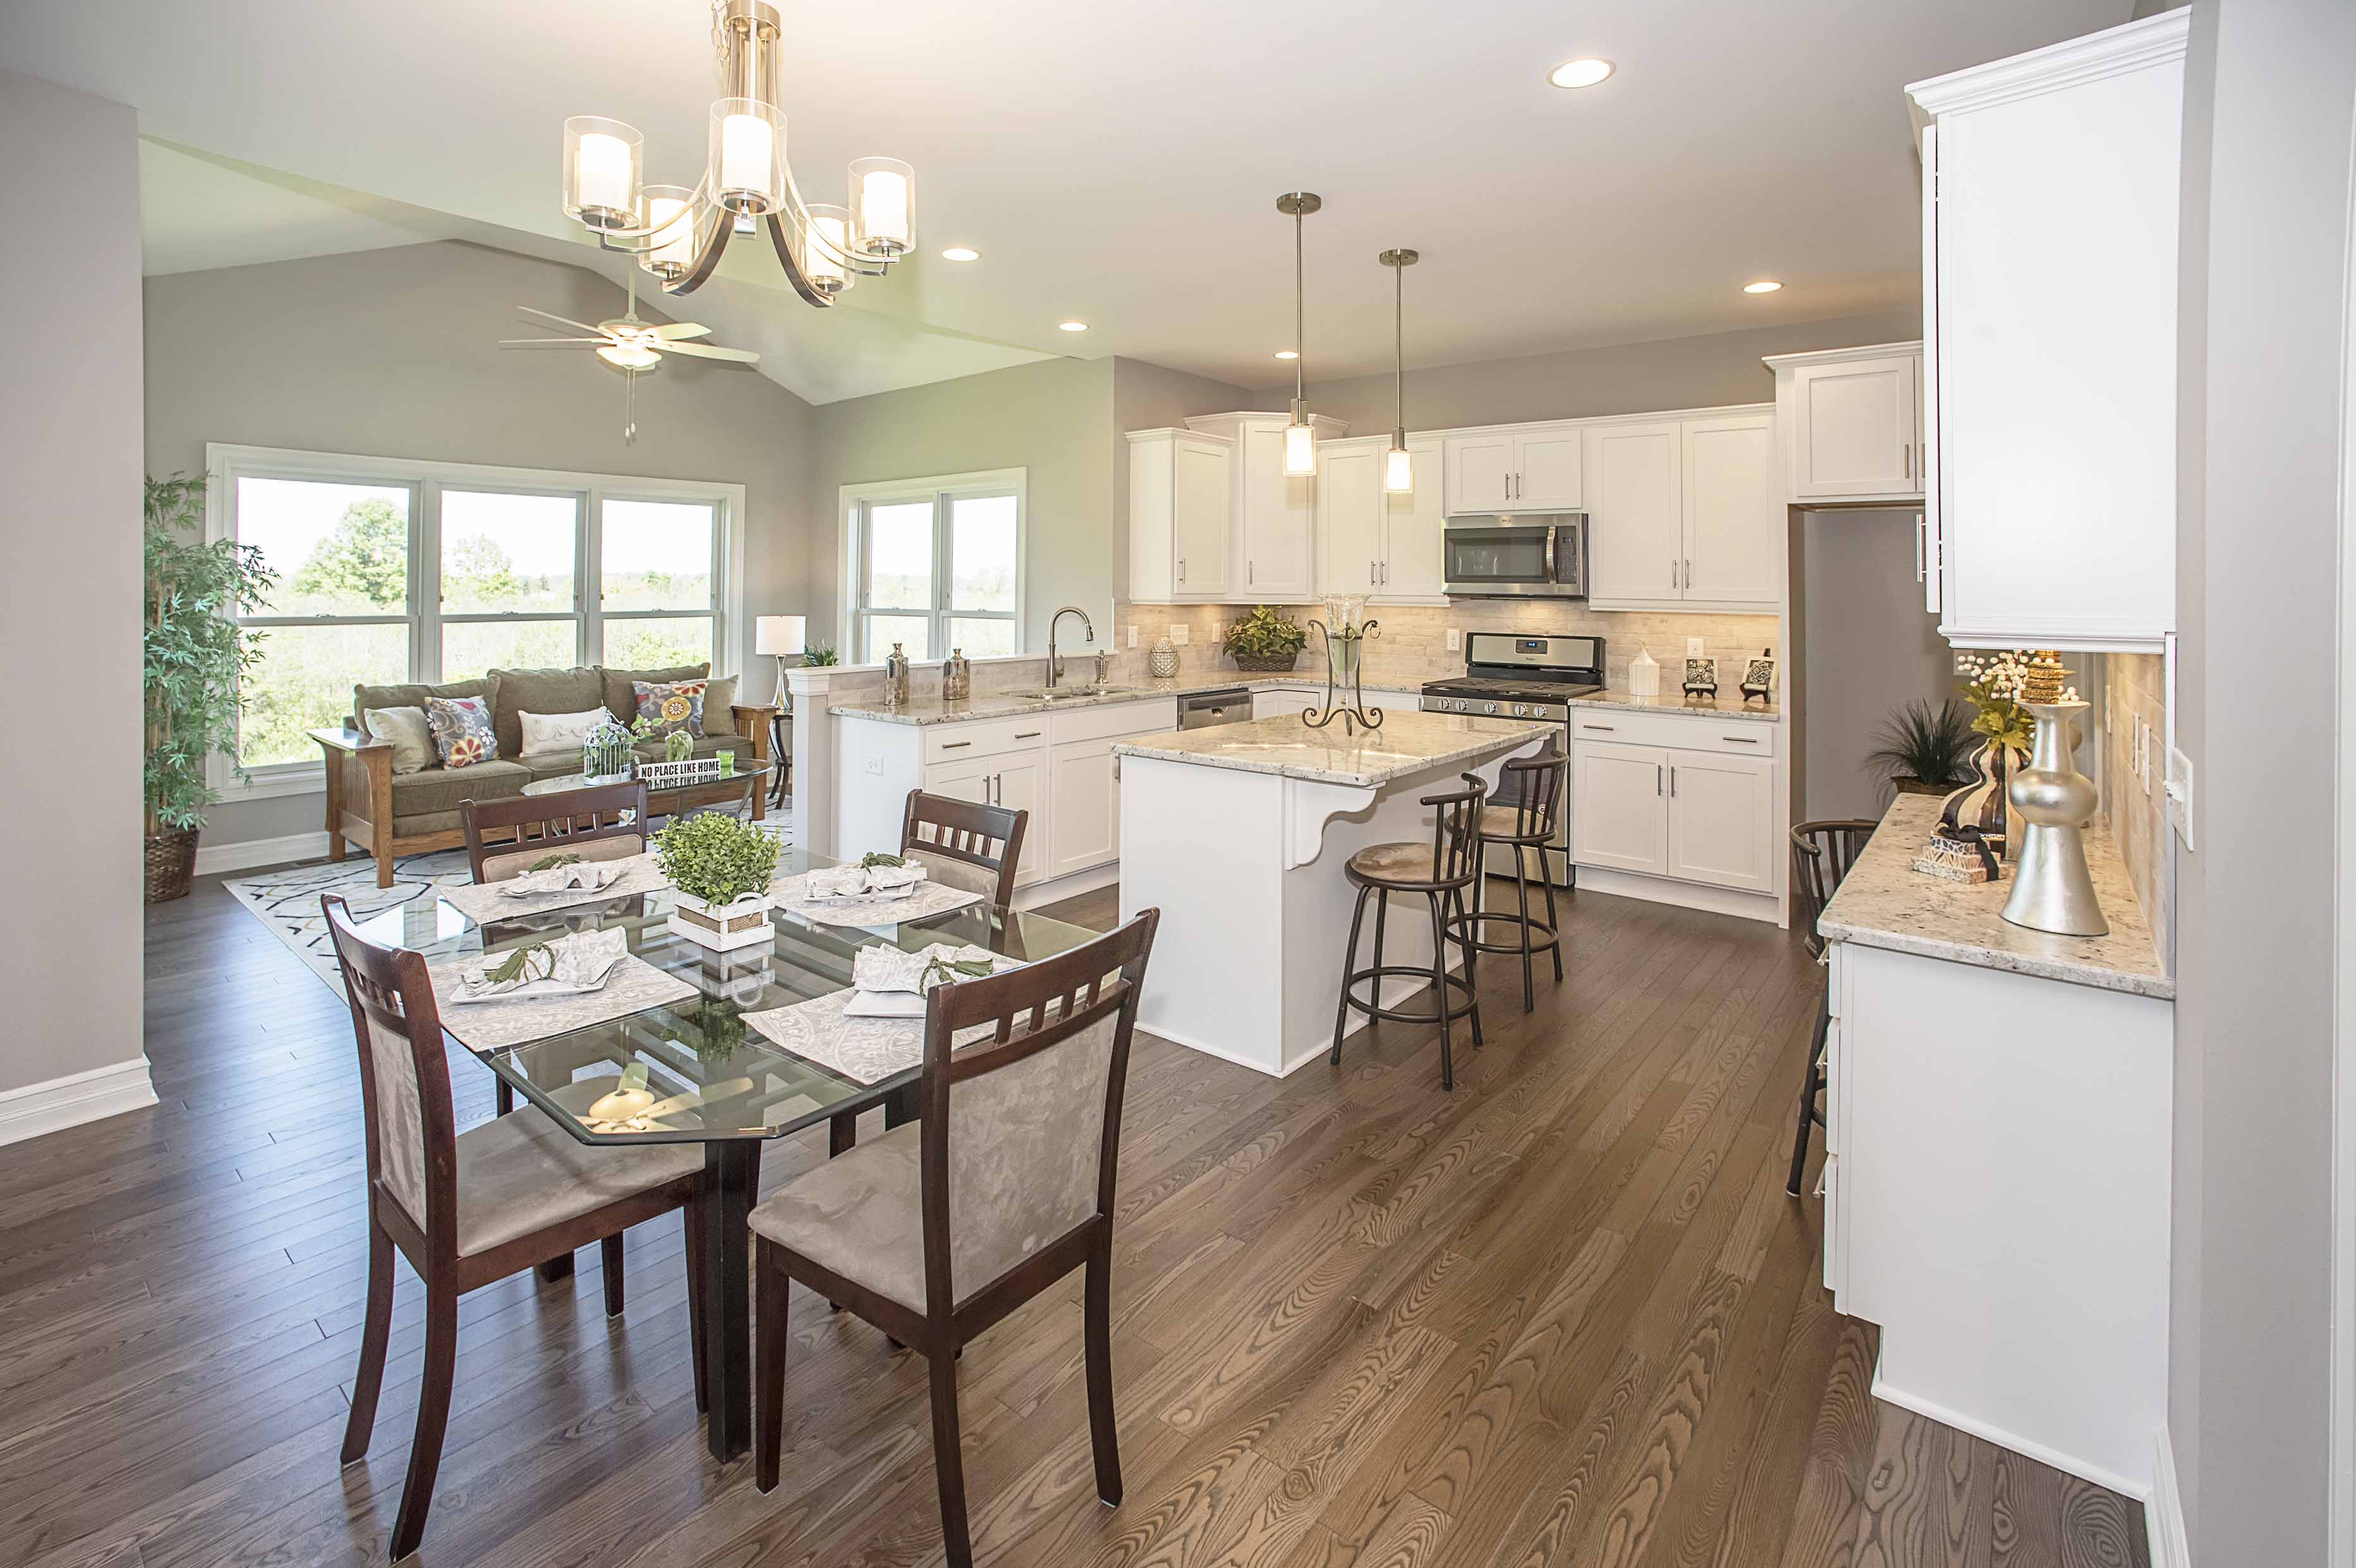 Es Homes shows its timeless 'Weston' model in Orchard Park on home garden design, home greenhouse design, home orchard fruit tree, home orchard irrigation system, home orchard plan, home winery design, home fruit orchard layout, home aquaponics design, home virginia design,